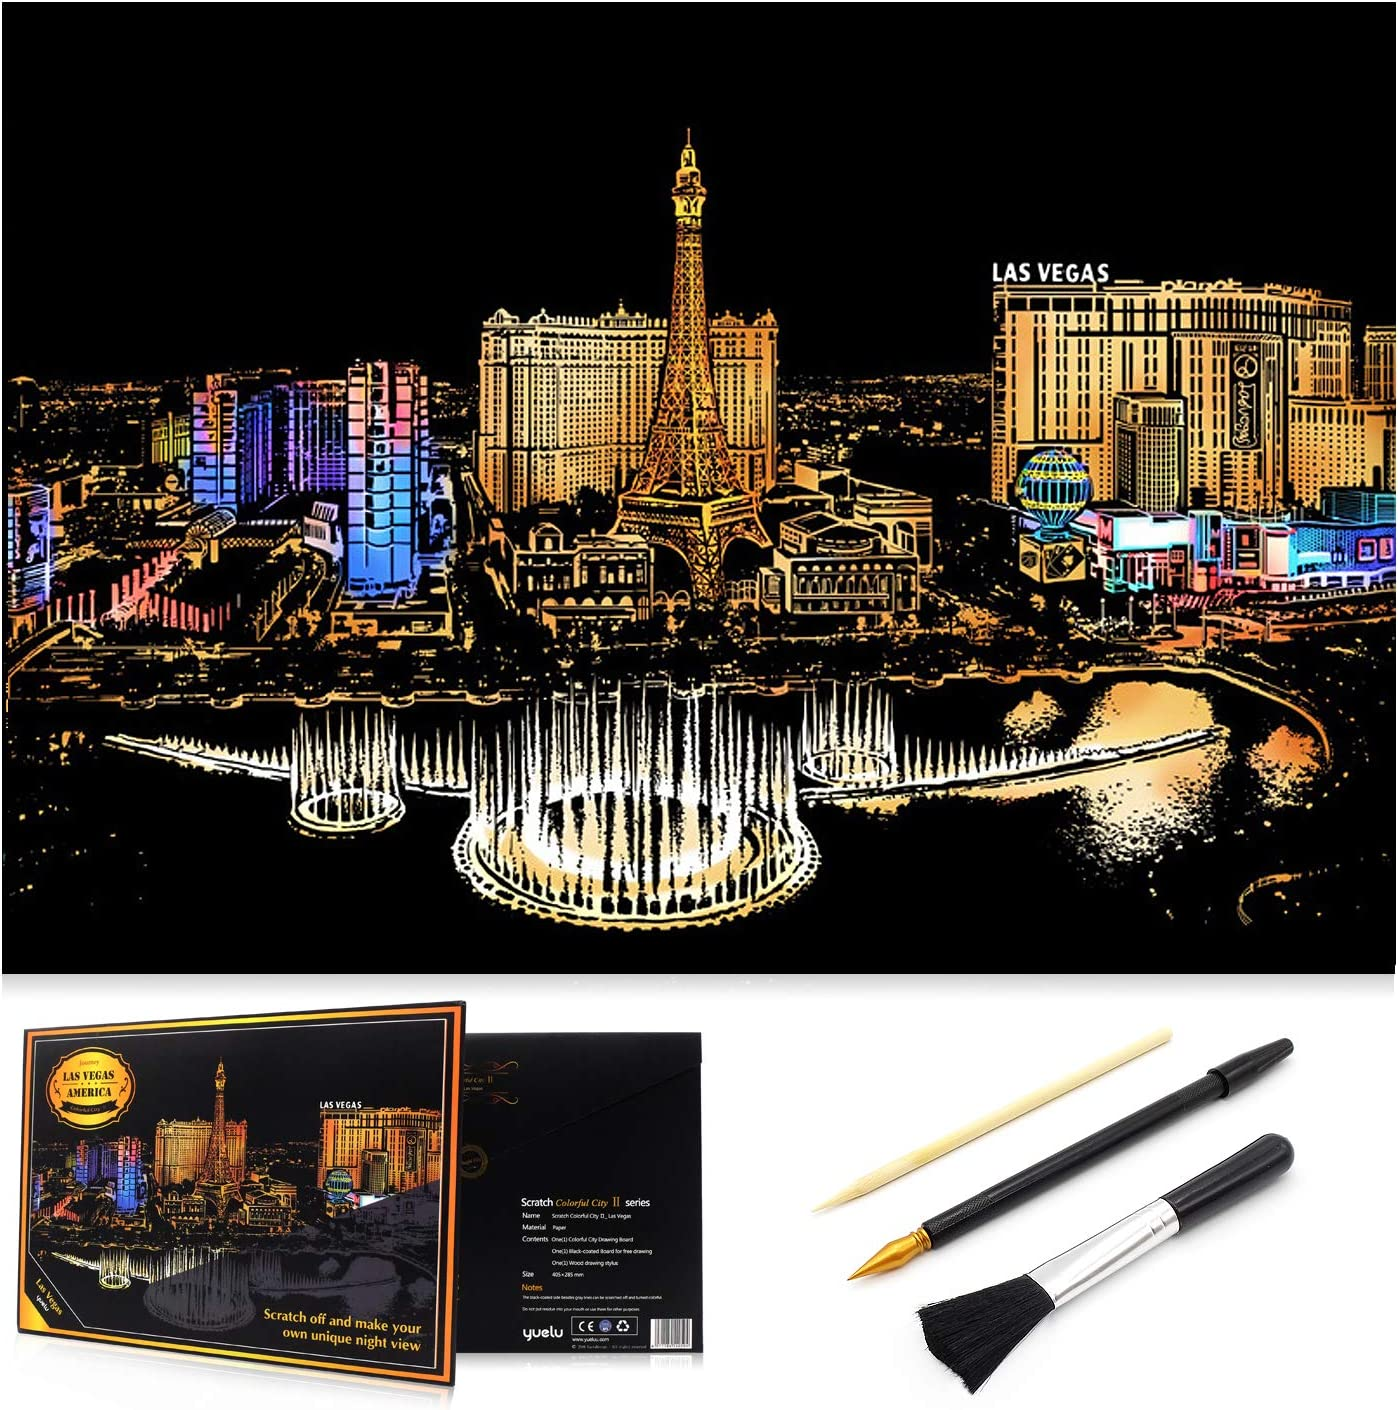 Dream Castle with 3 Tools Craft Art Set Sketch Pad DIY Night View Scratchboard Rainbow Scratch Art Painting Paper 16 x 11.2 Creative Gift MIASTAR Scratch Painting Kits for Adults /& Kids